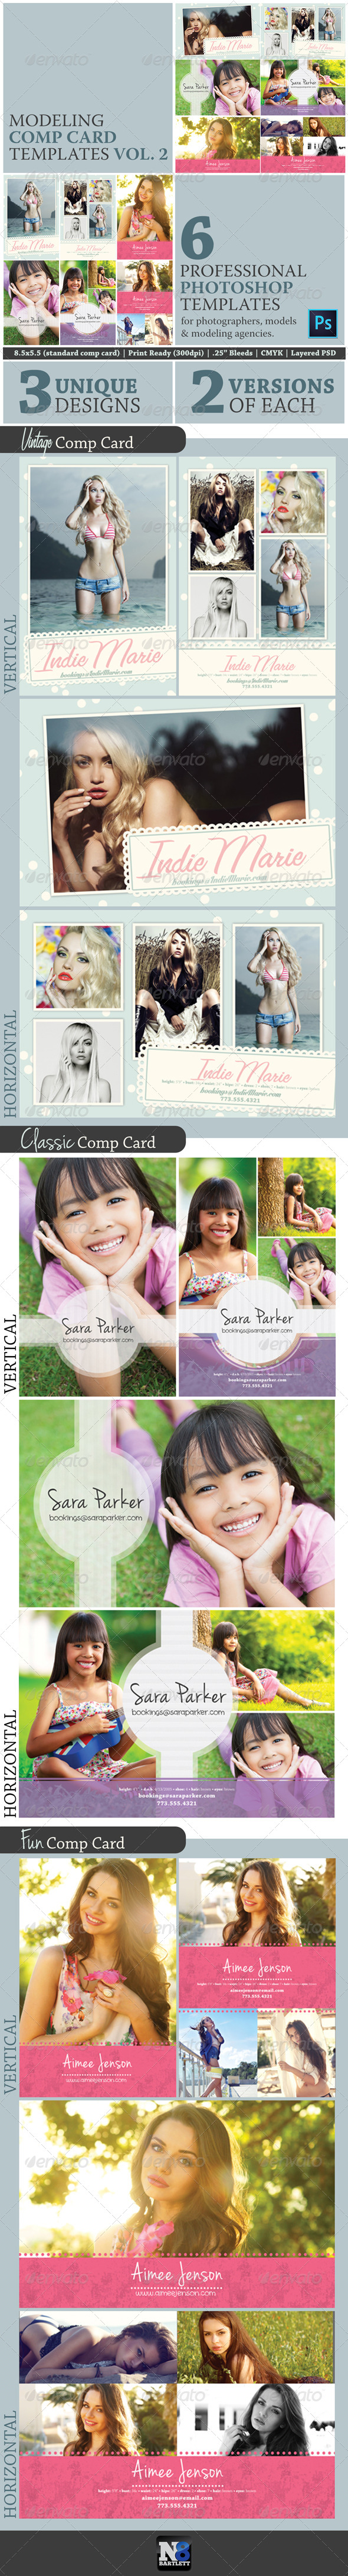 Model Comp Card Template Kit Vol 2